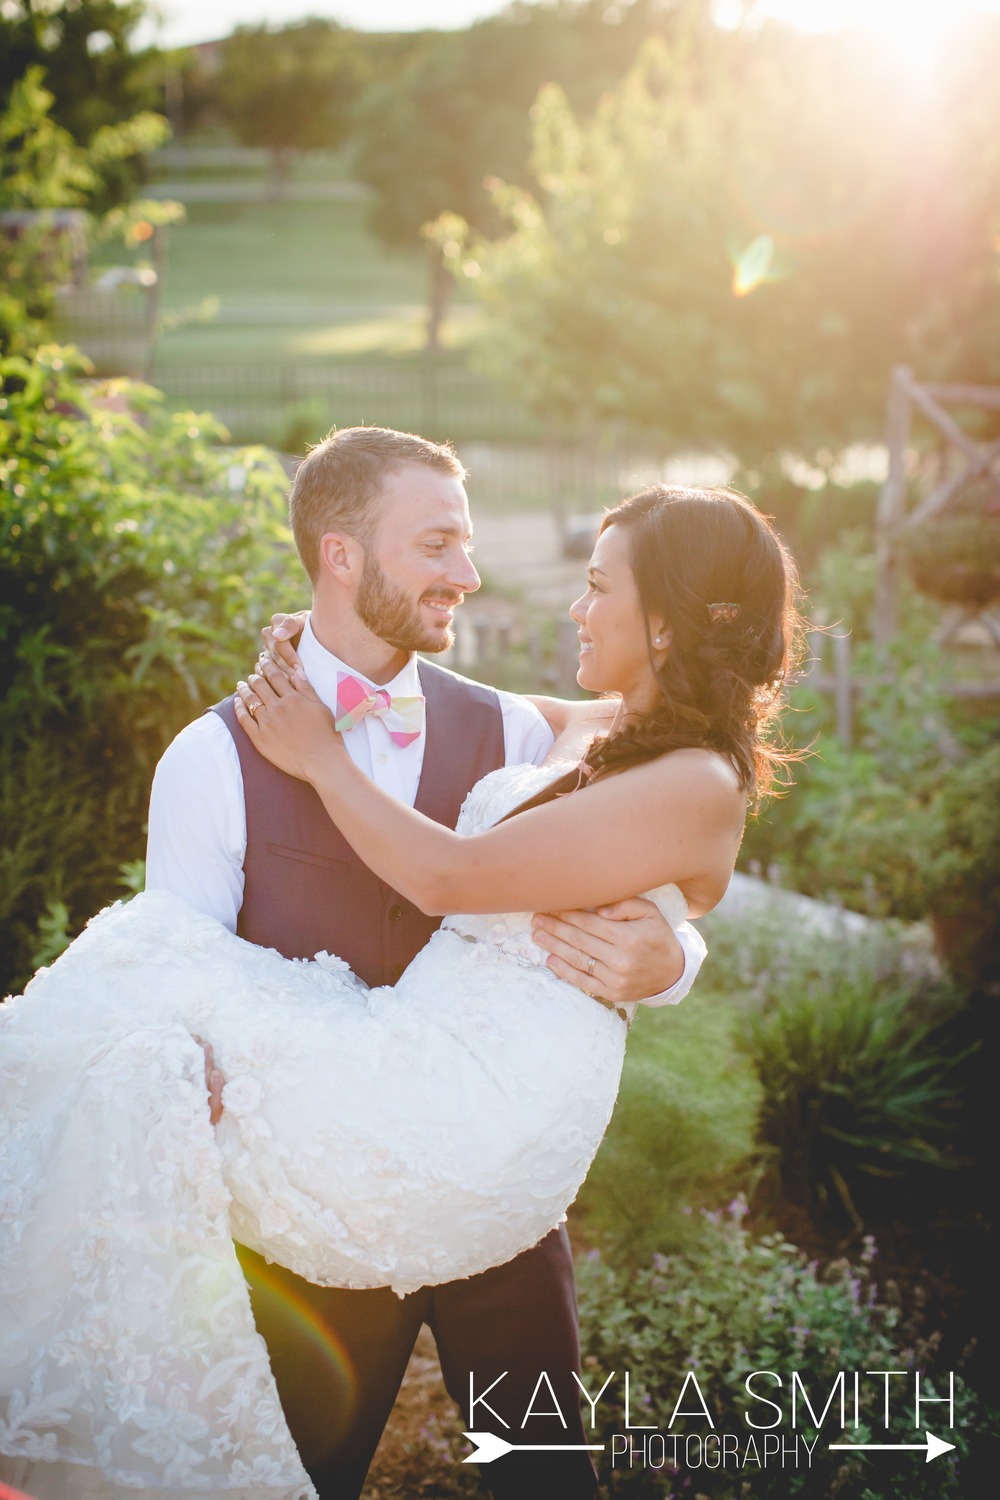 An Amarillo Botanical Garden wedding in the Golden Hour. Perfection.